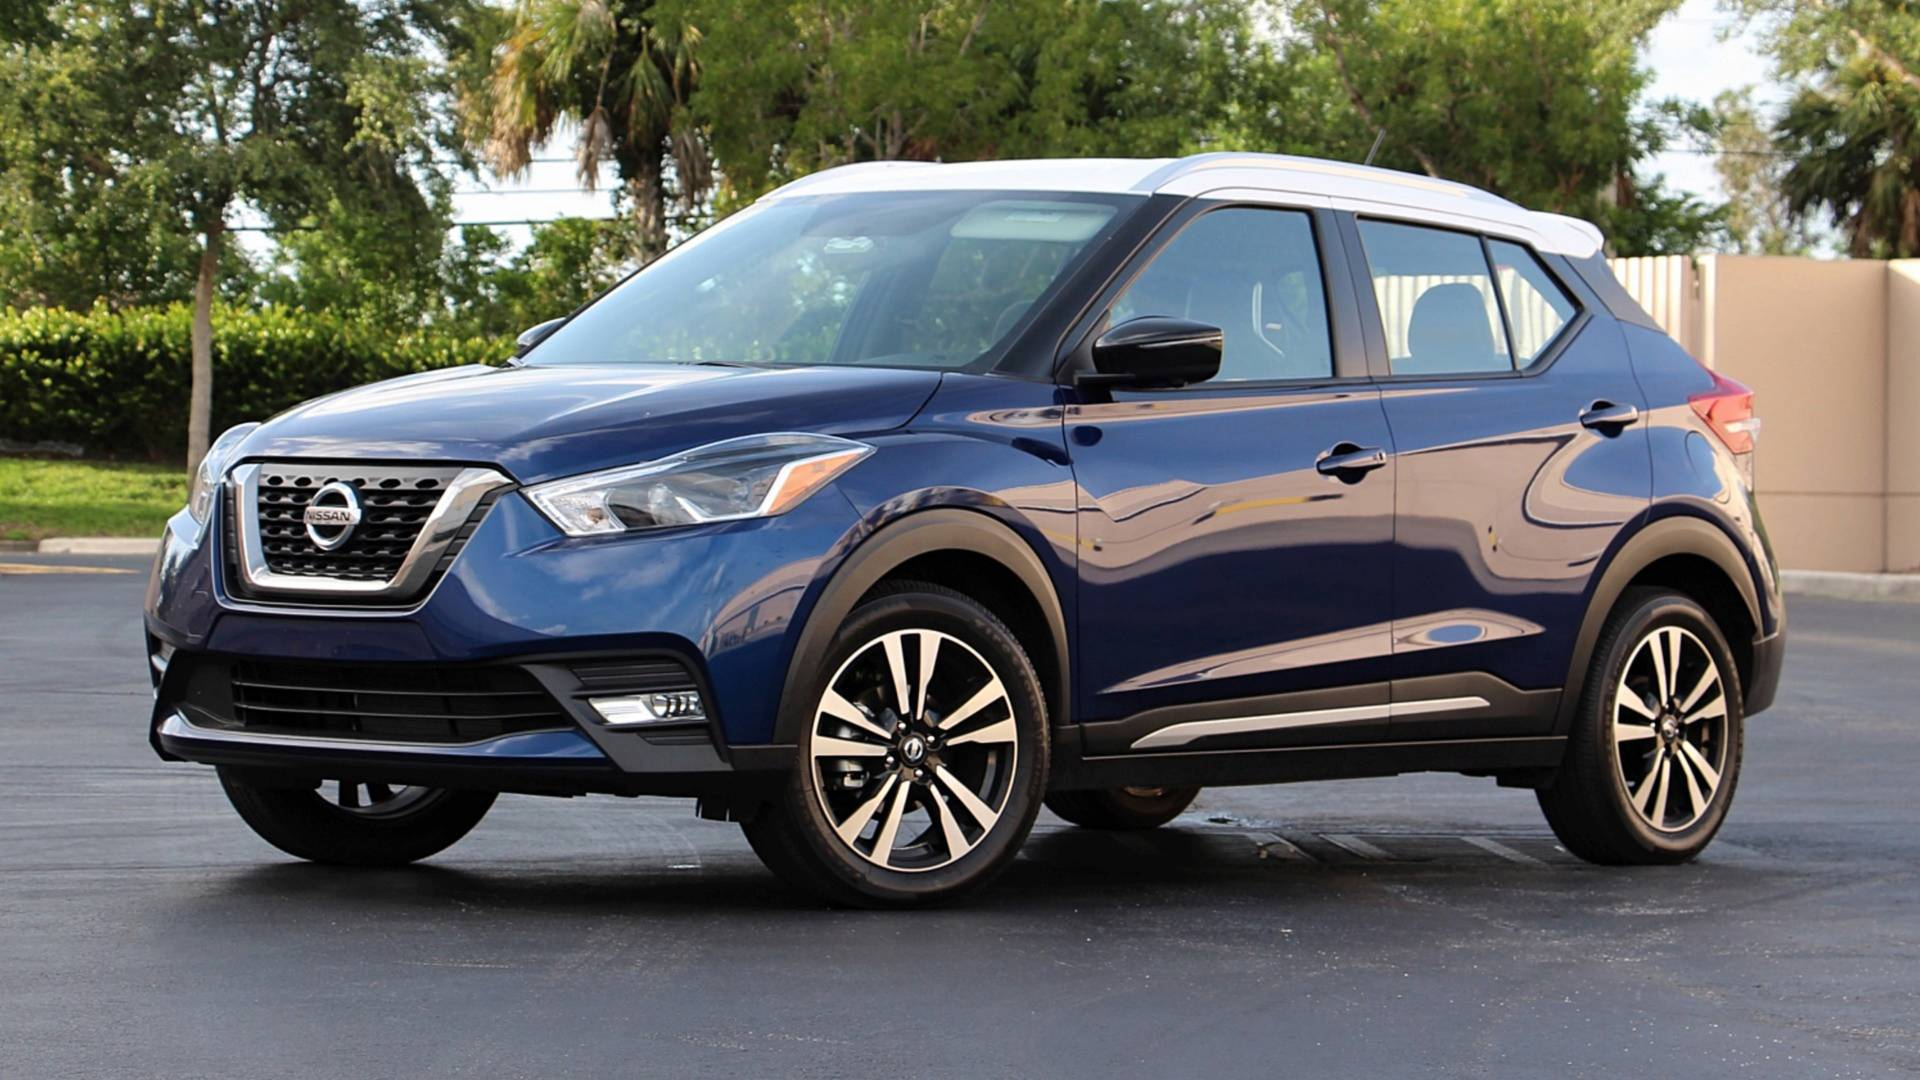 2018 Nissan Kicks Review: A Shoe-In